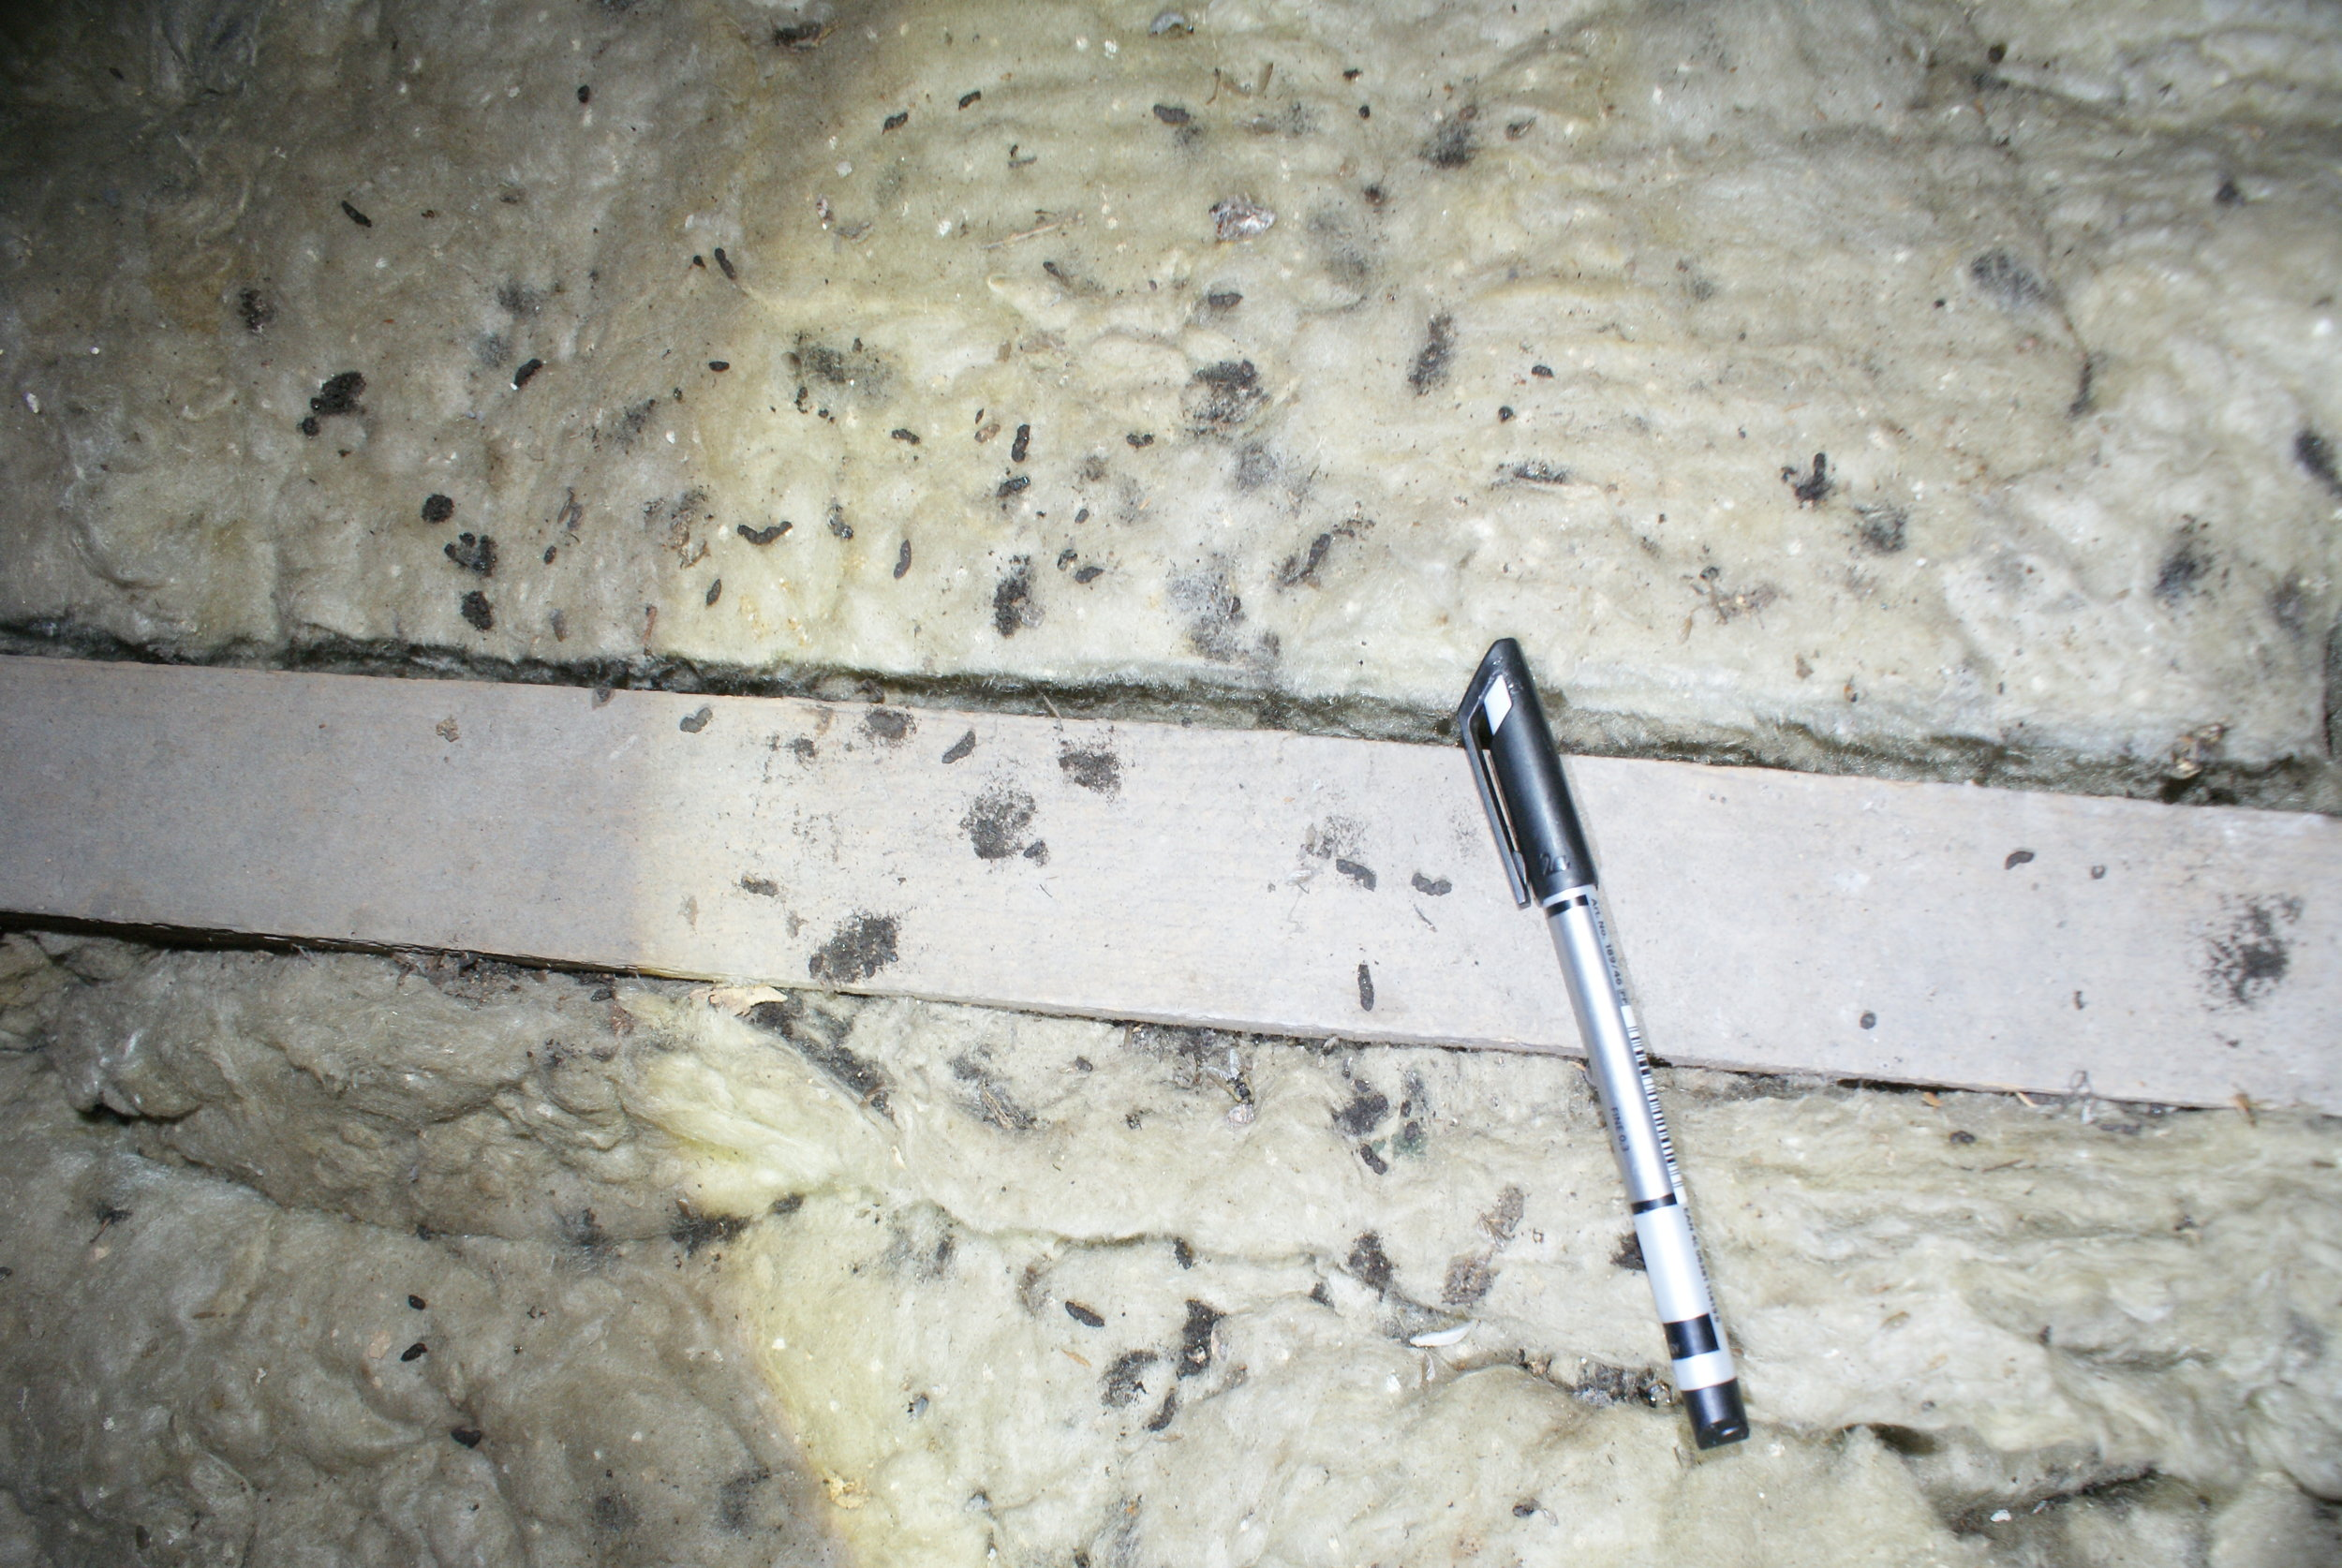 Common Pipistrelle droppings within a roof void